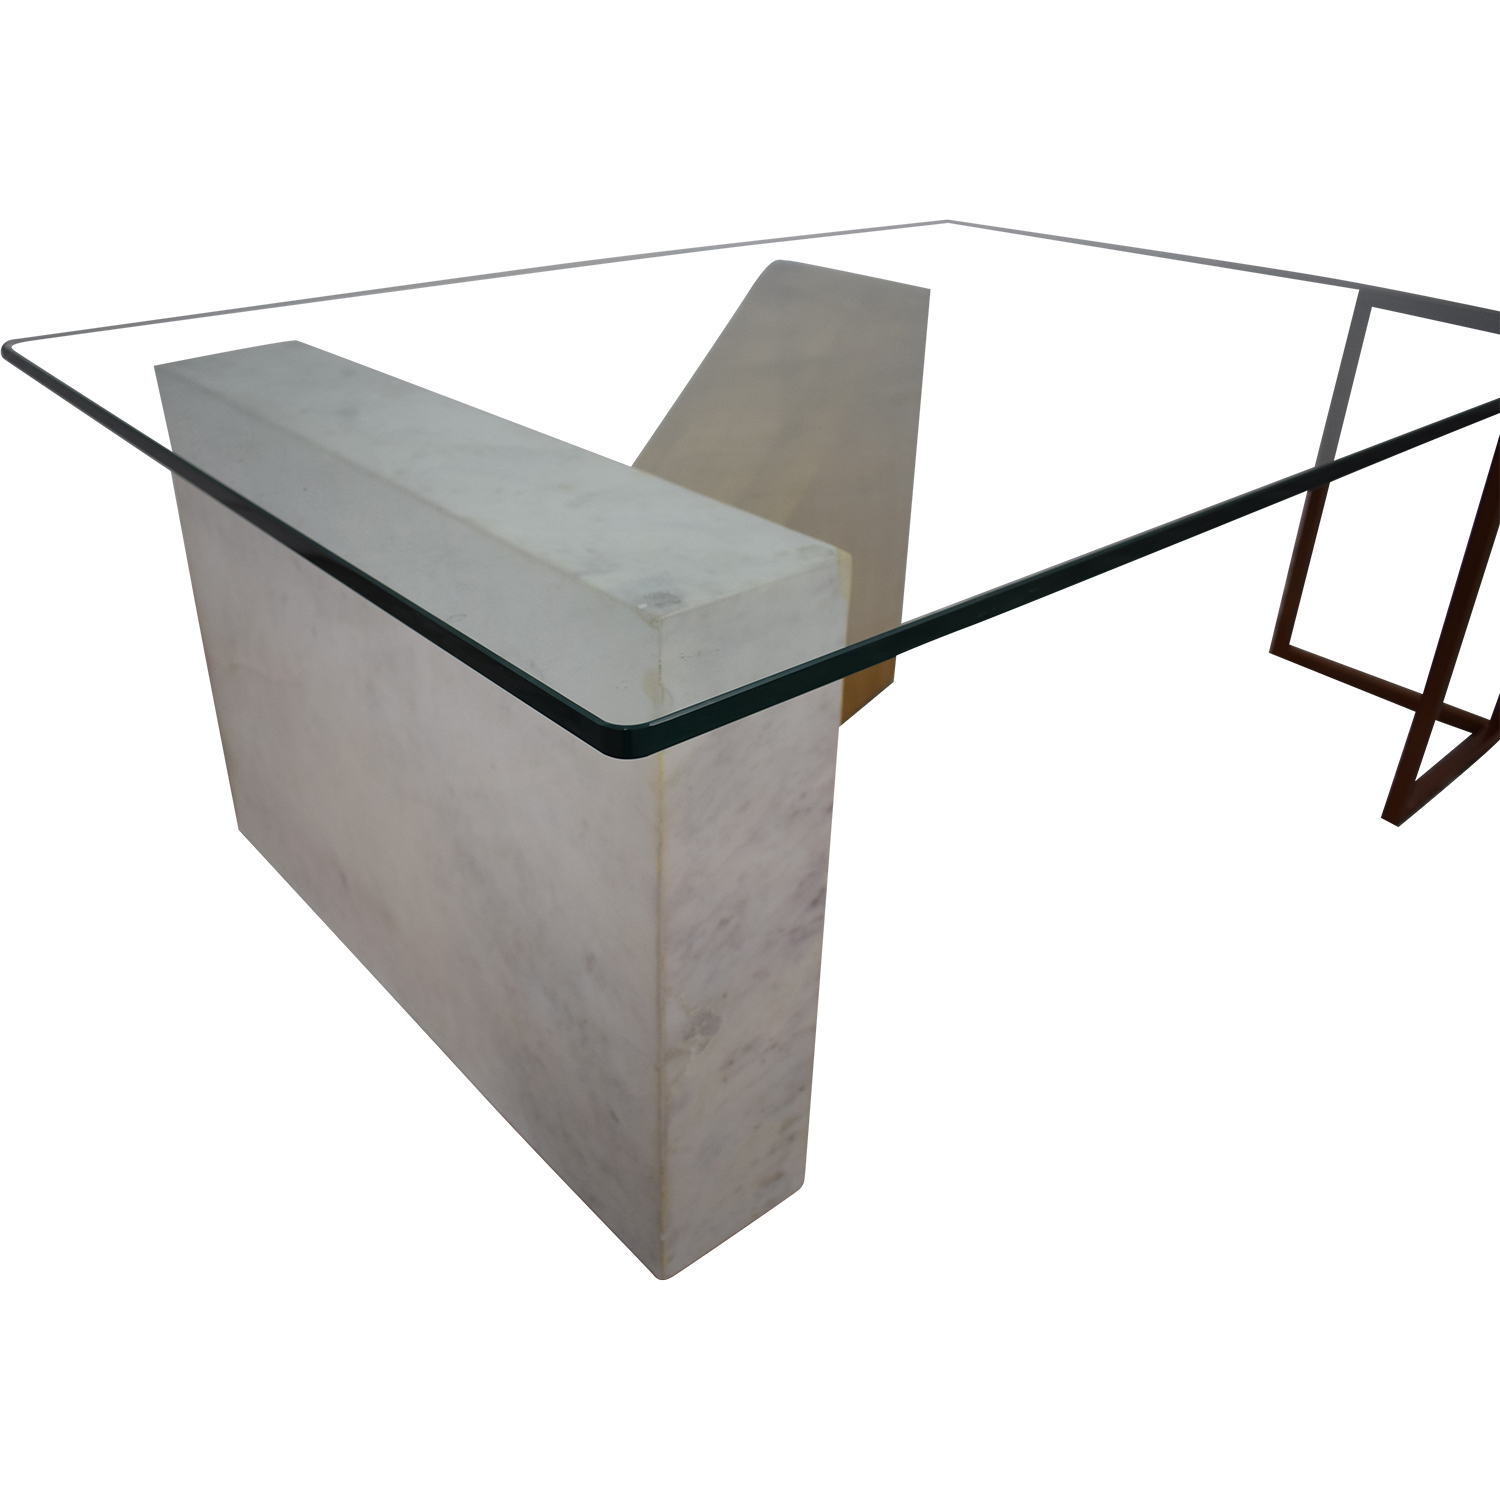 West Elm West Elm Bowie Coffee Table discount